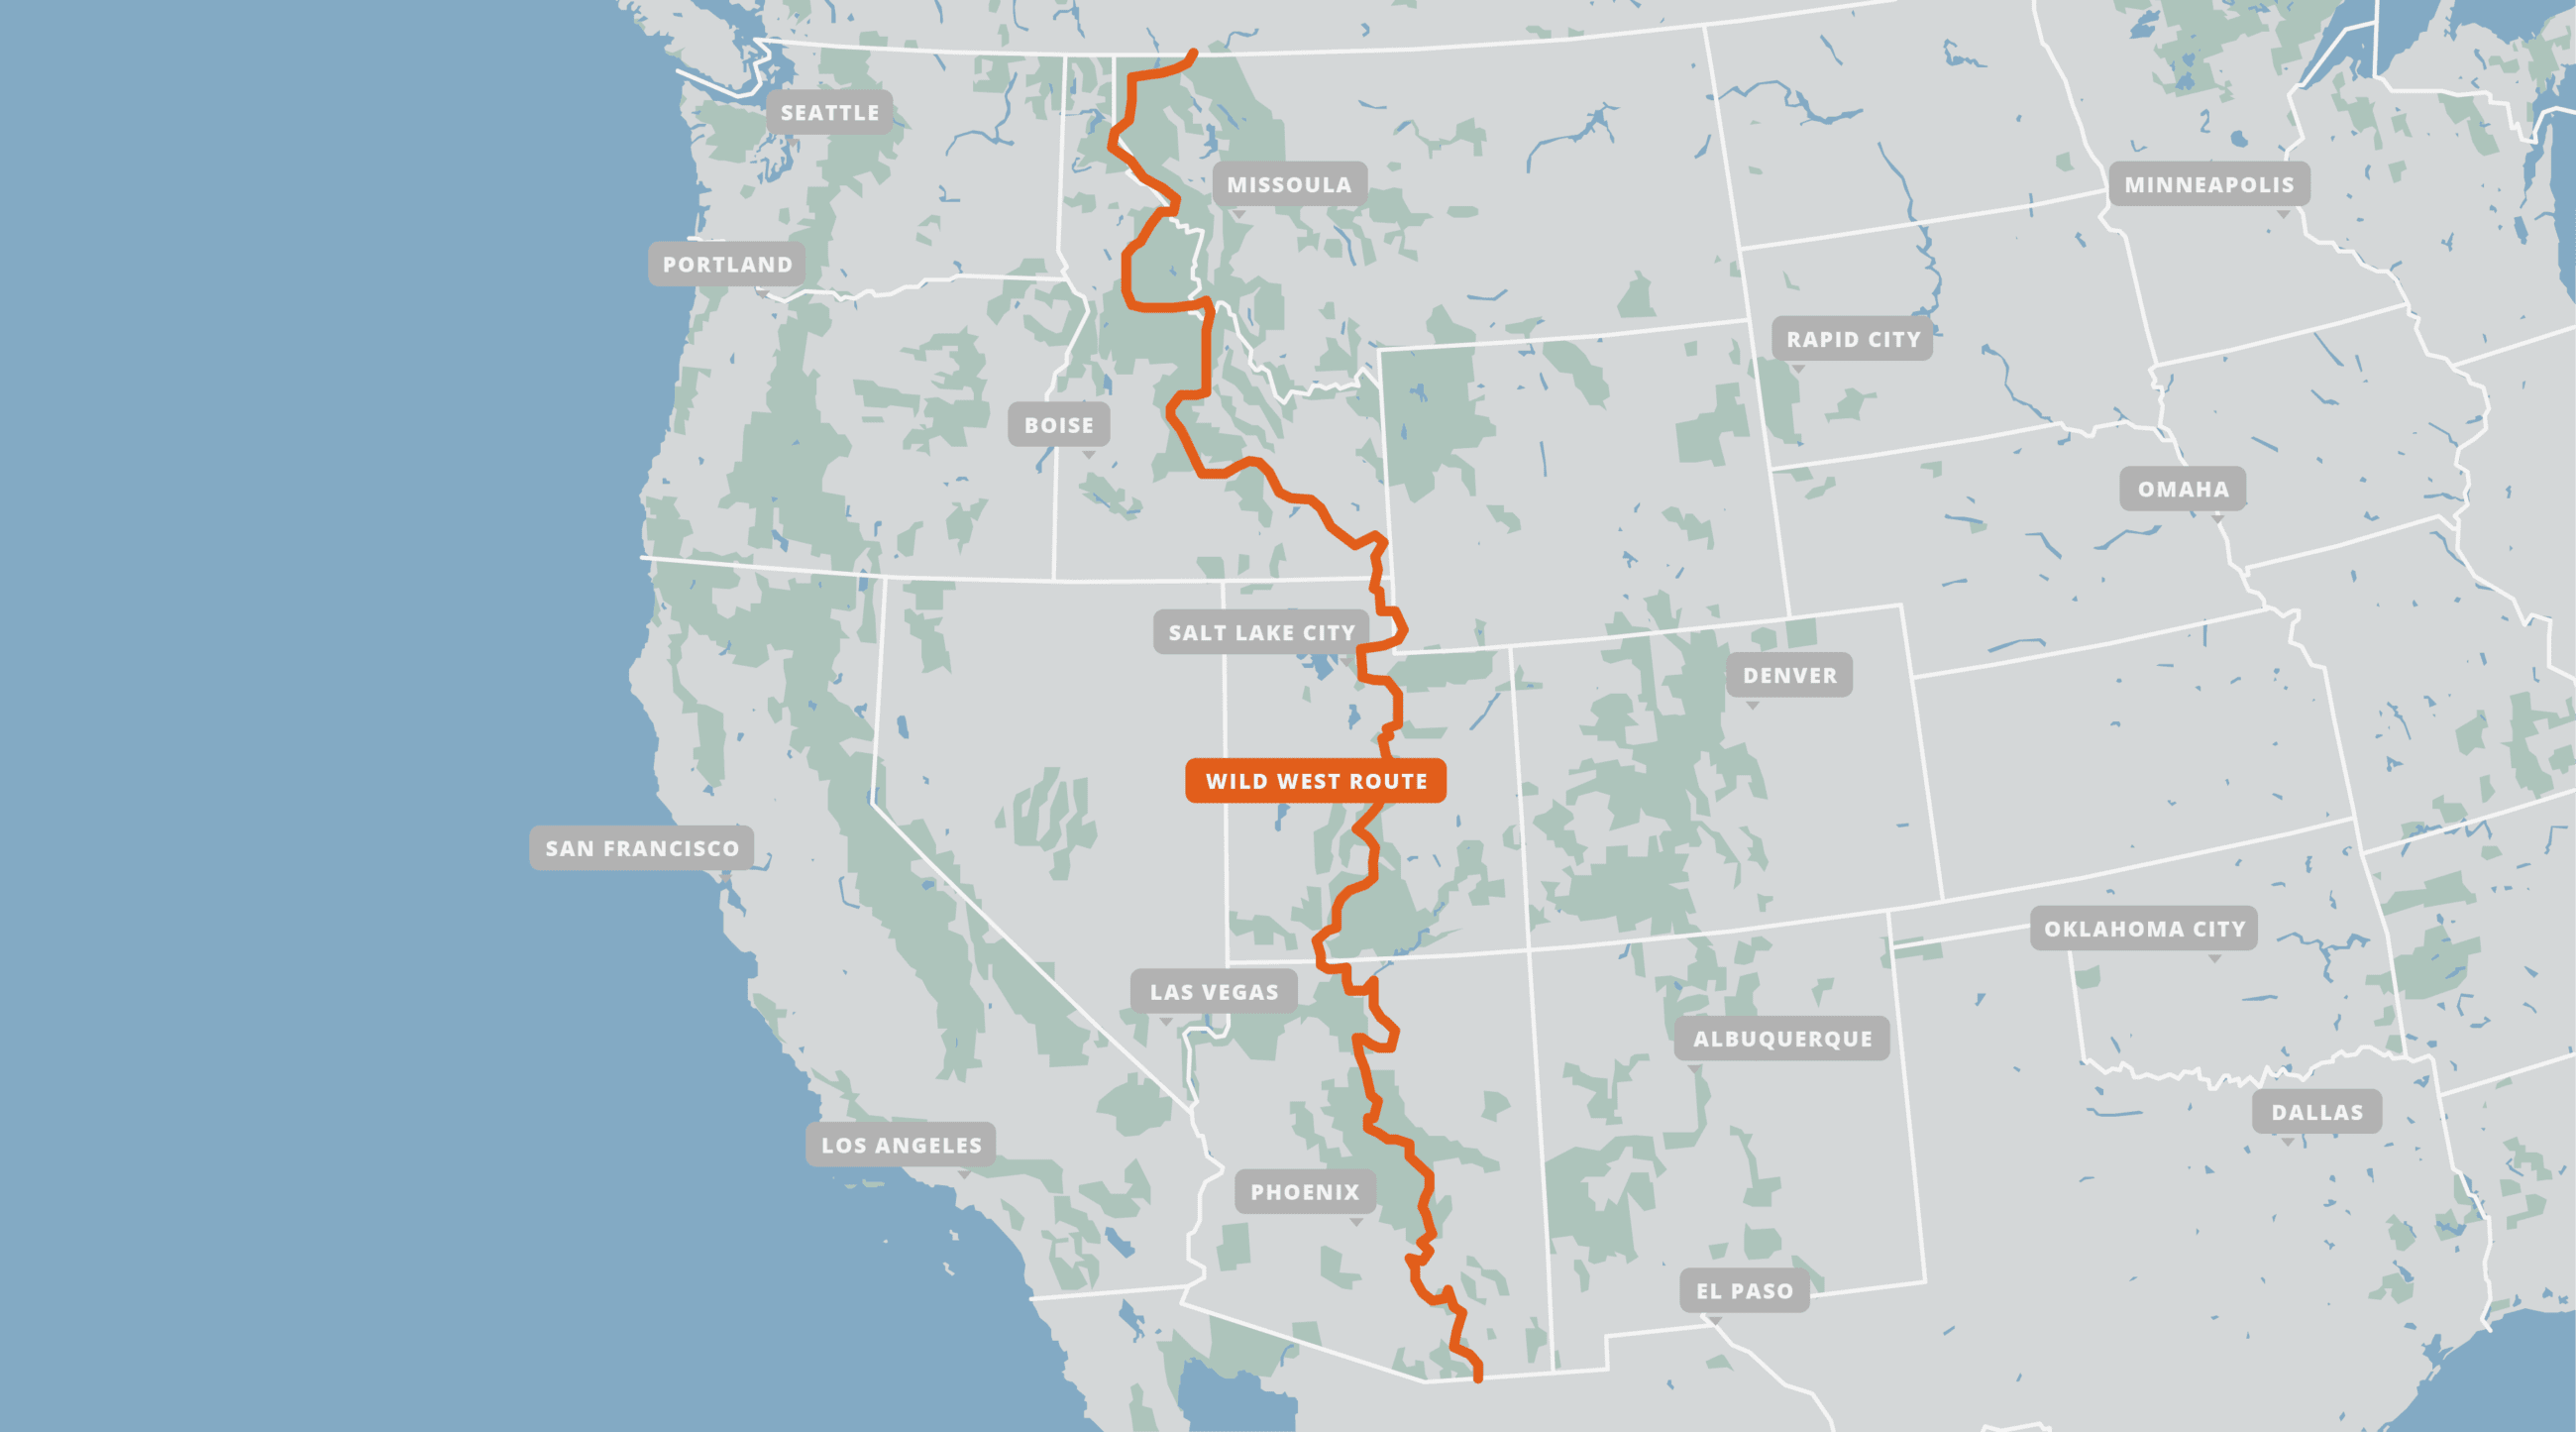 A map of the Wild West Route.